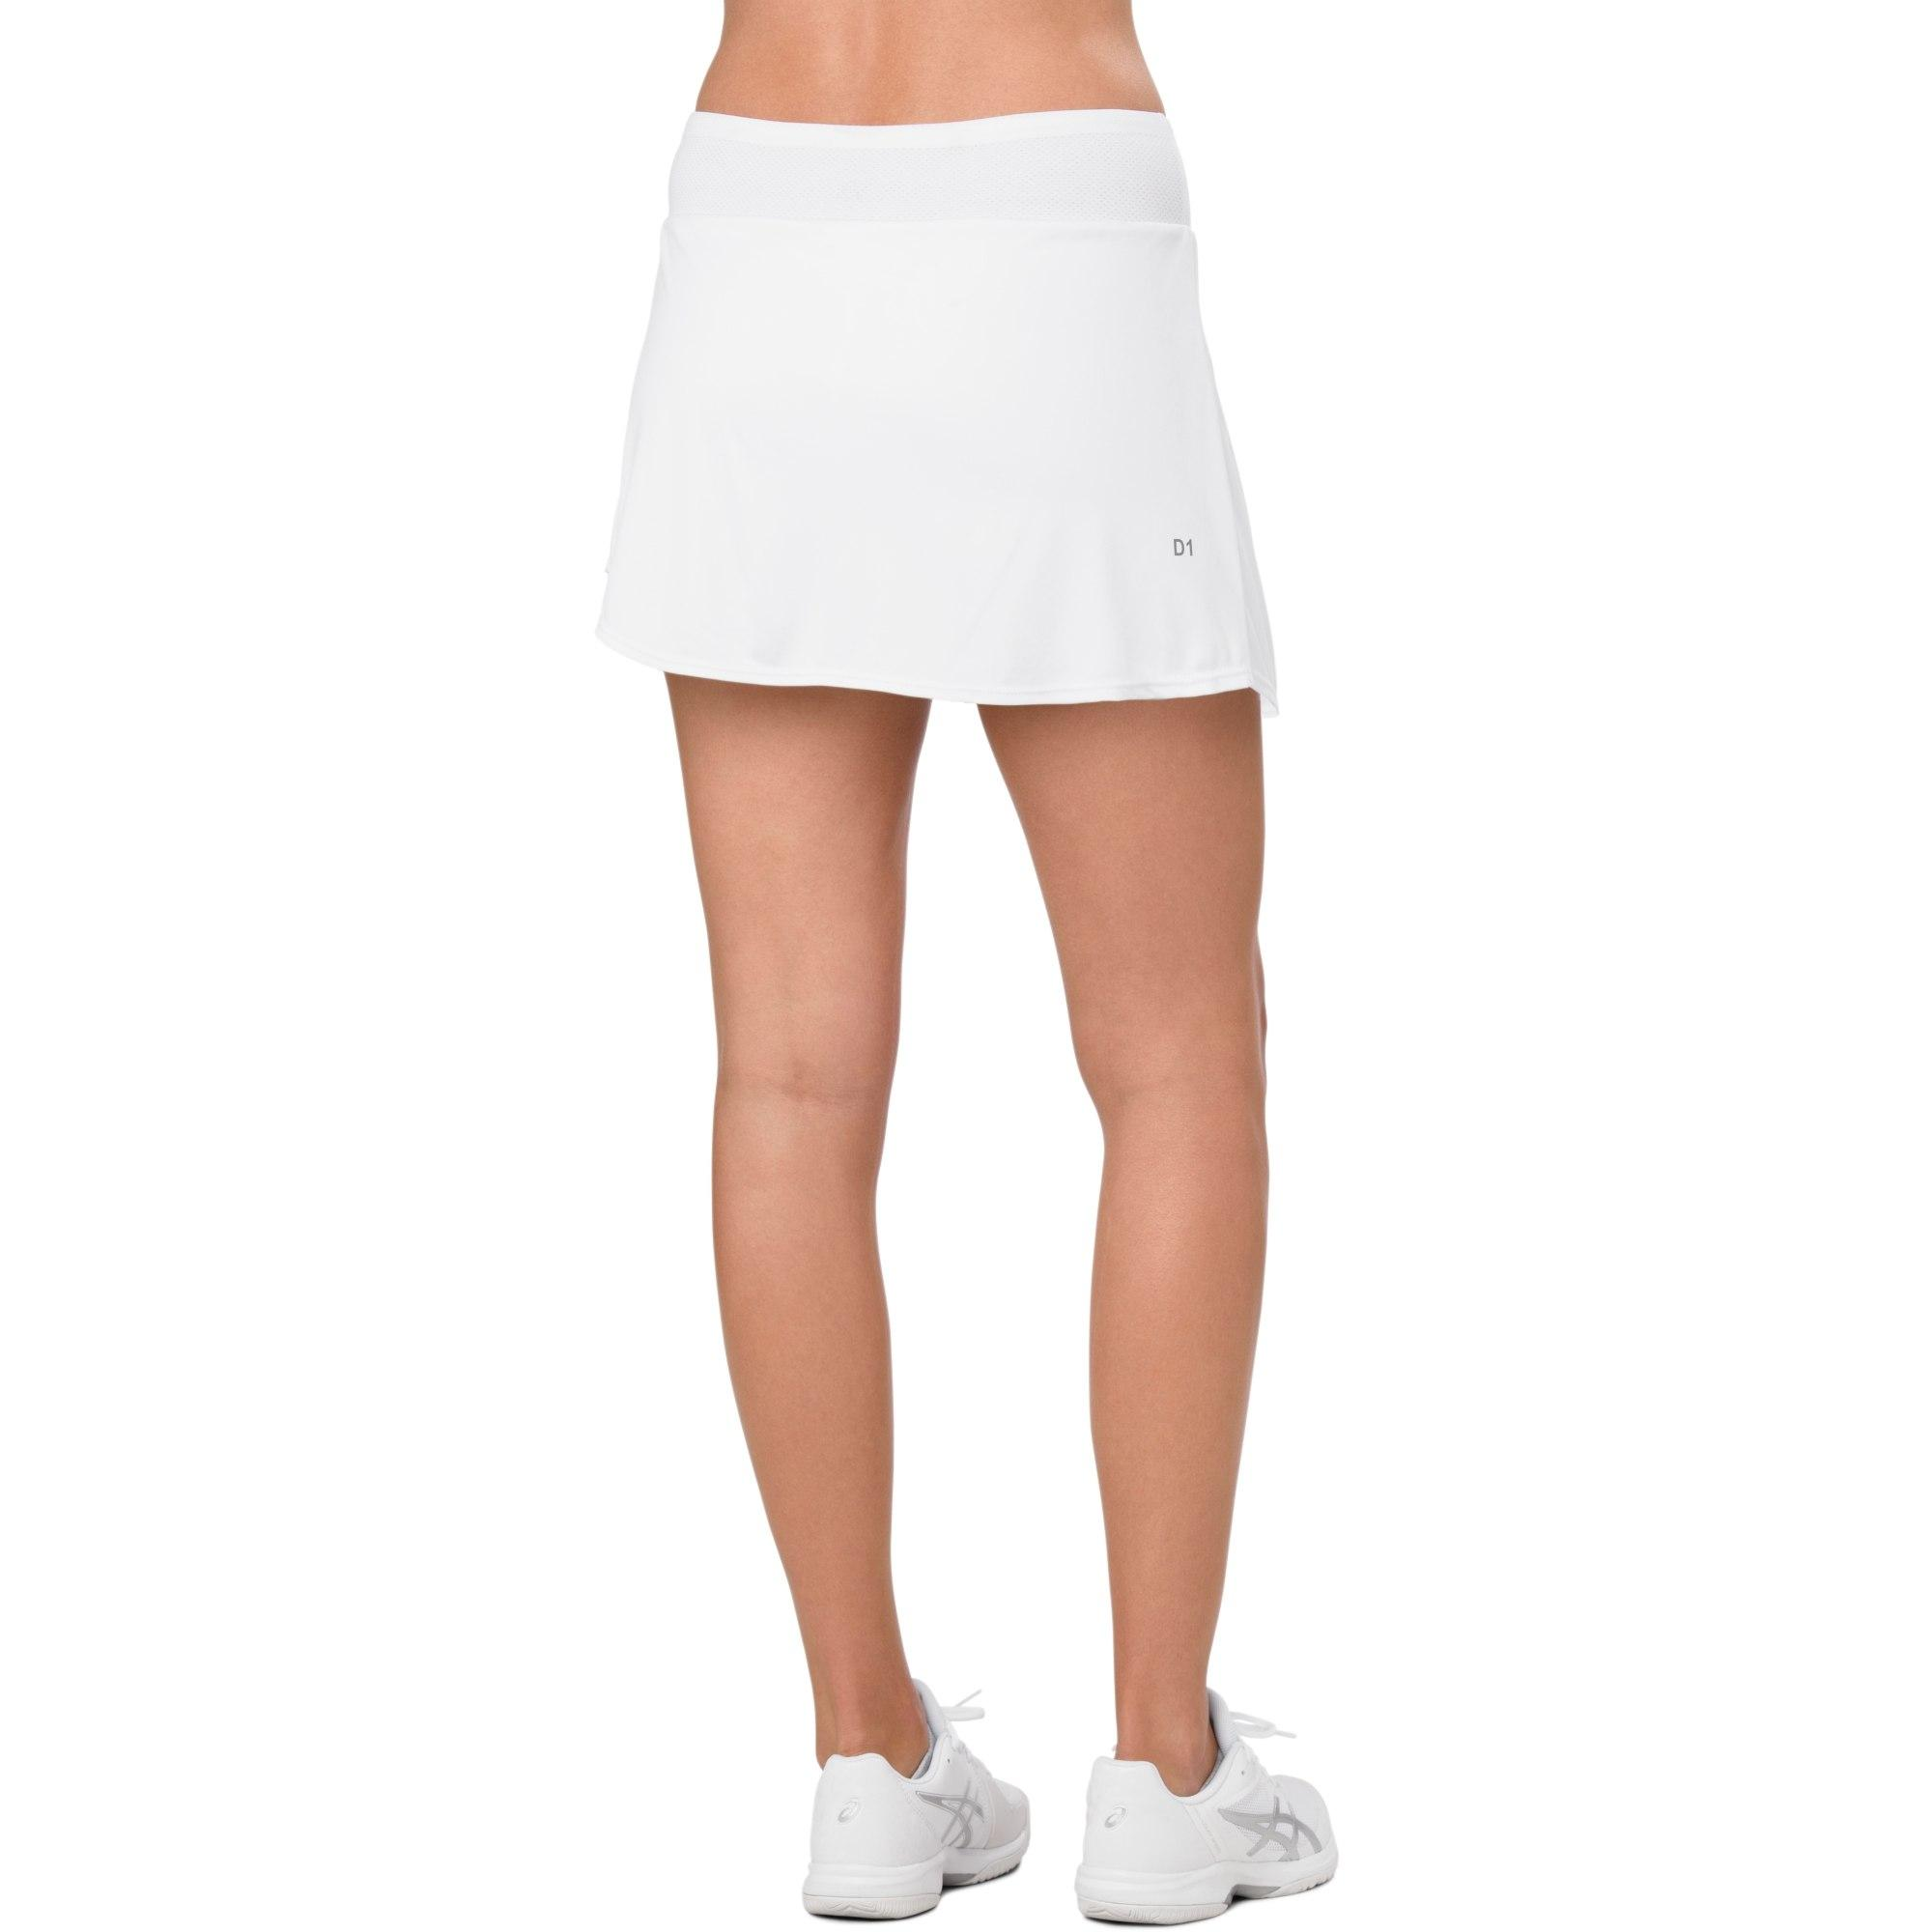 Asics Dame Club Skort - Brilliant White - Tennisnutscom-9905